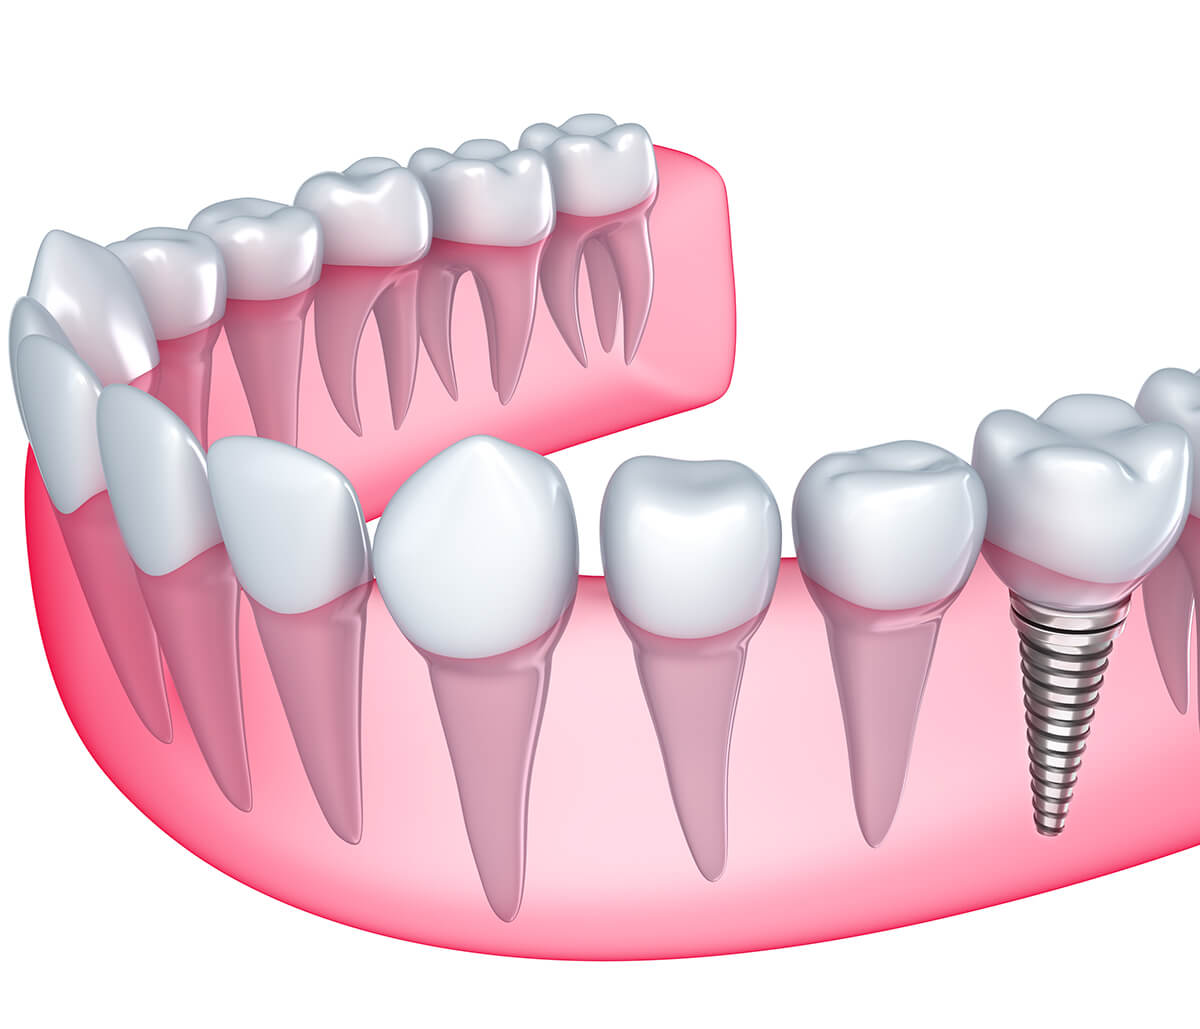 Franklin area dentist describes the dental implant procedure for replacing a missing tooth